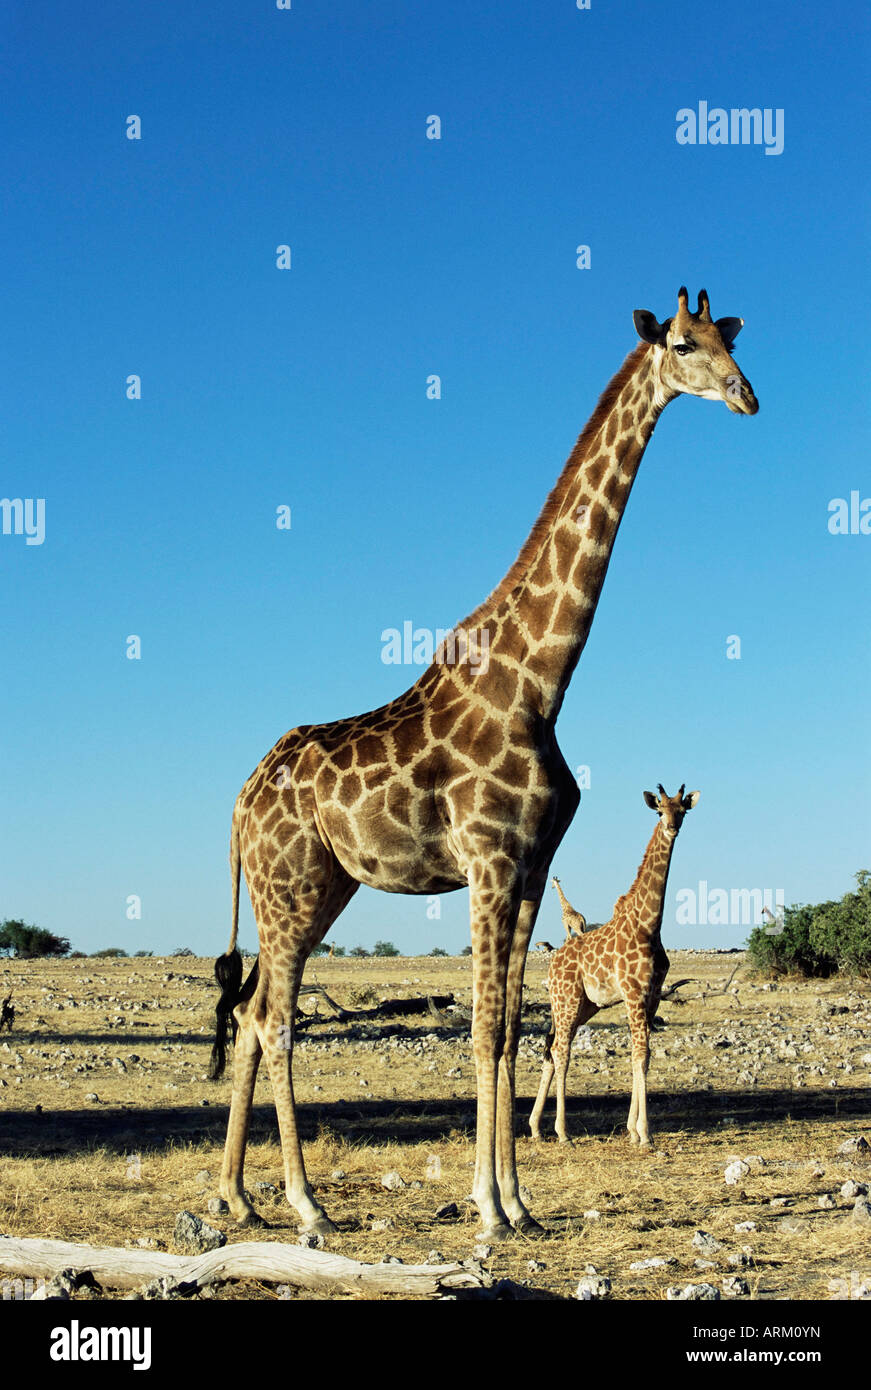 Girafe, Giraffa camelopardalis, Etosha National Park, Namibie, Afrique Photo Stock